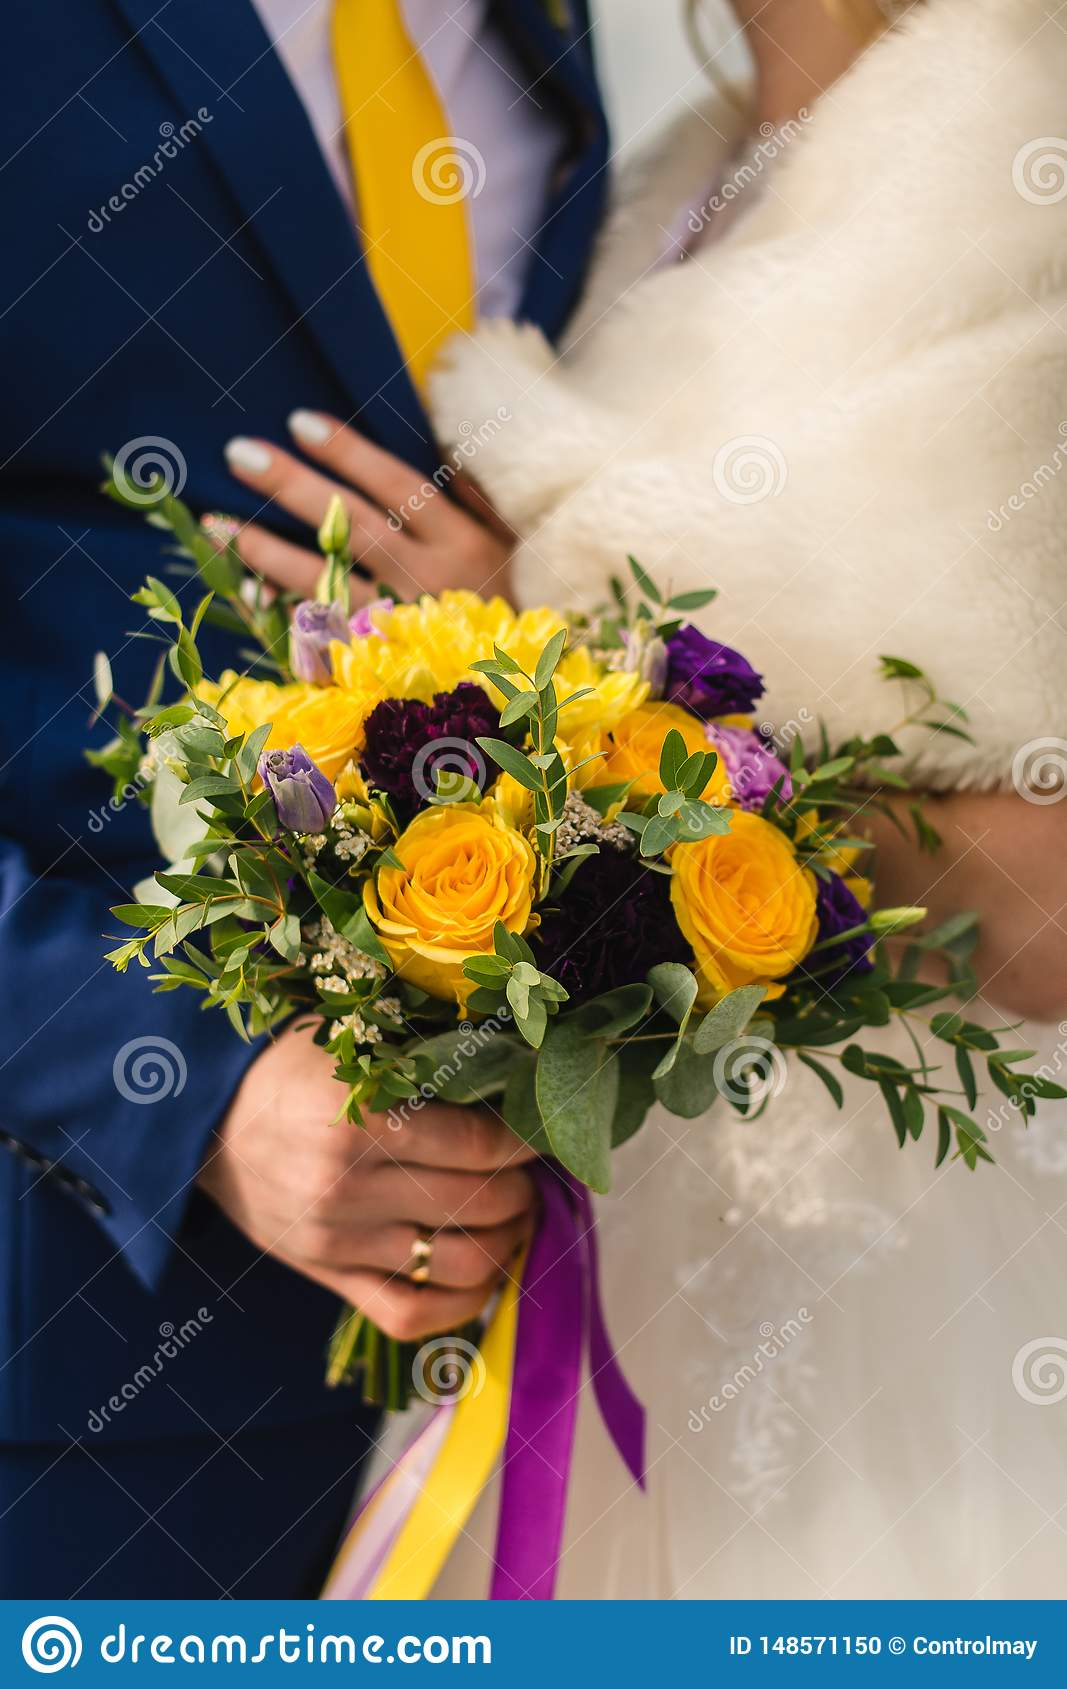 Bridal bouquet on the wedding day.